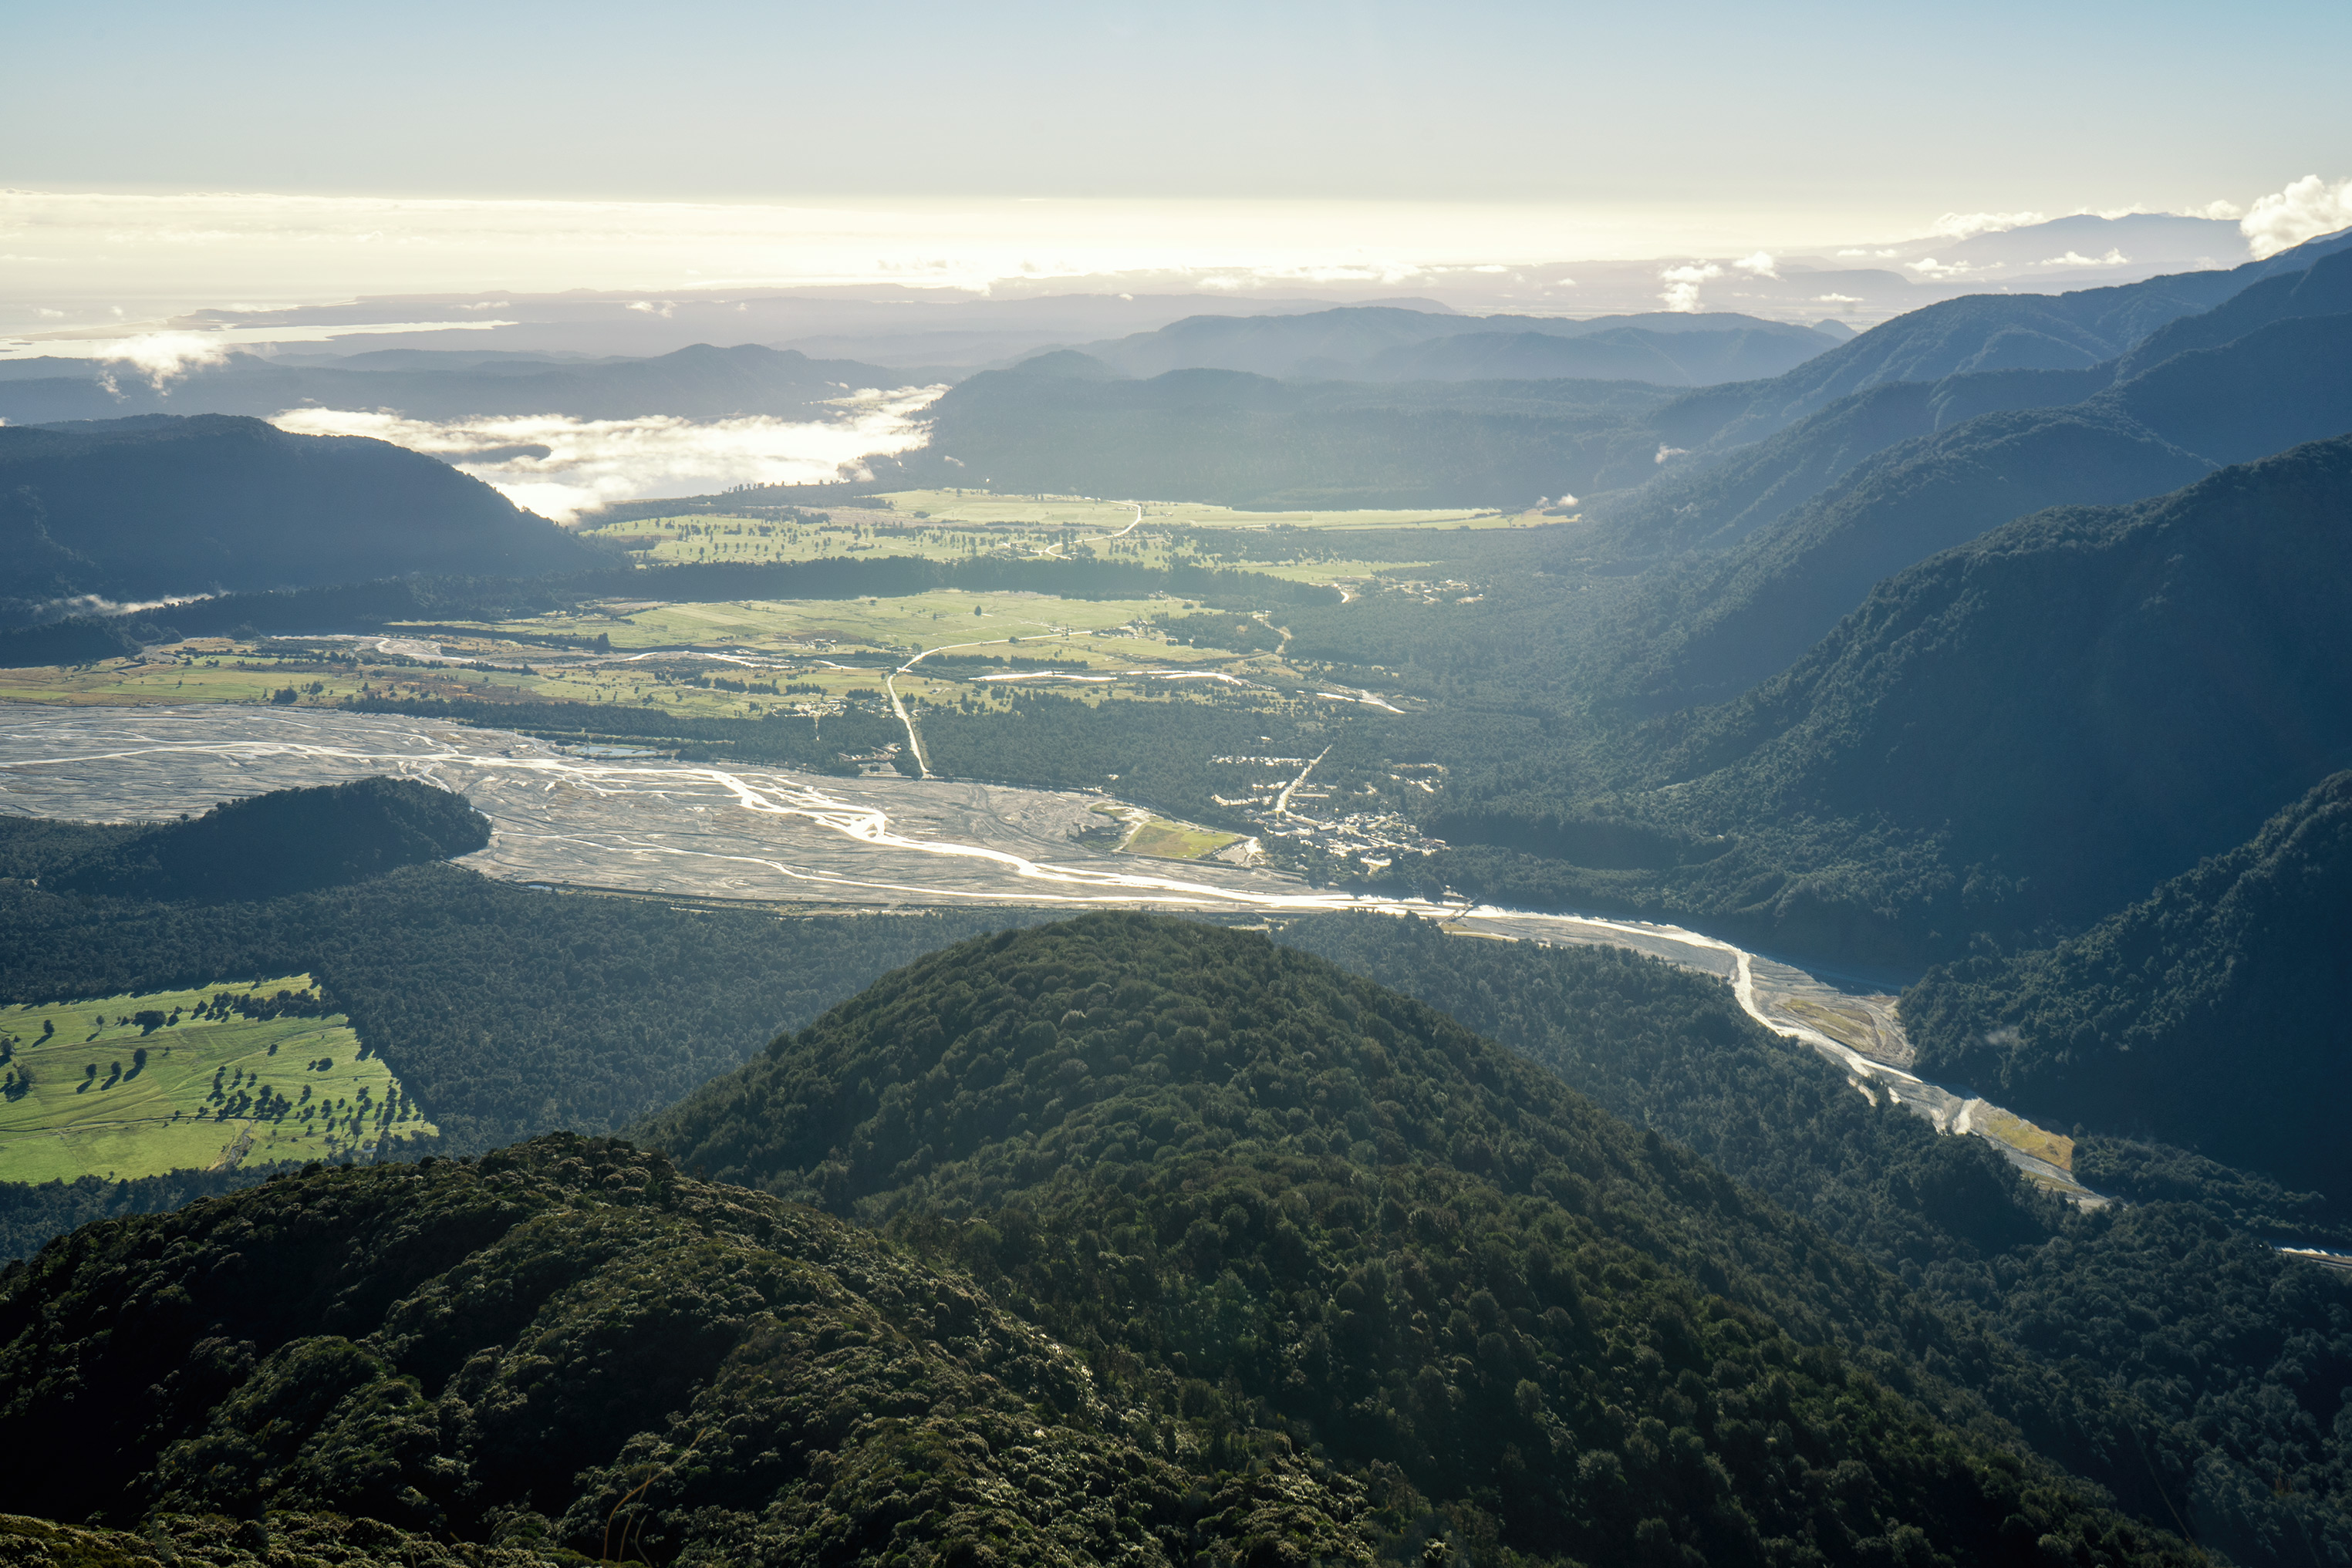 Franz Josef Glacier Alex Knob Track View Of Town And Waiho River At Sunrise